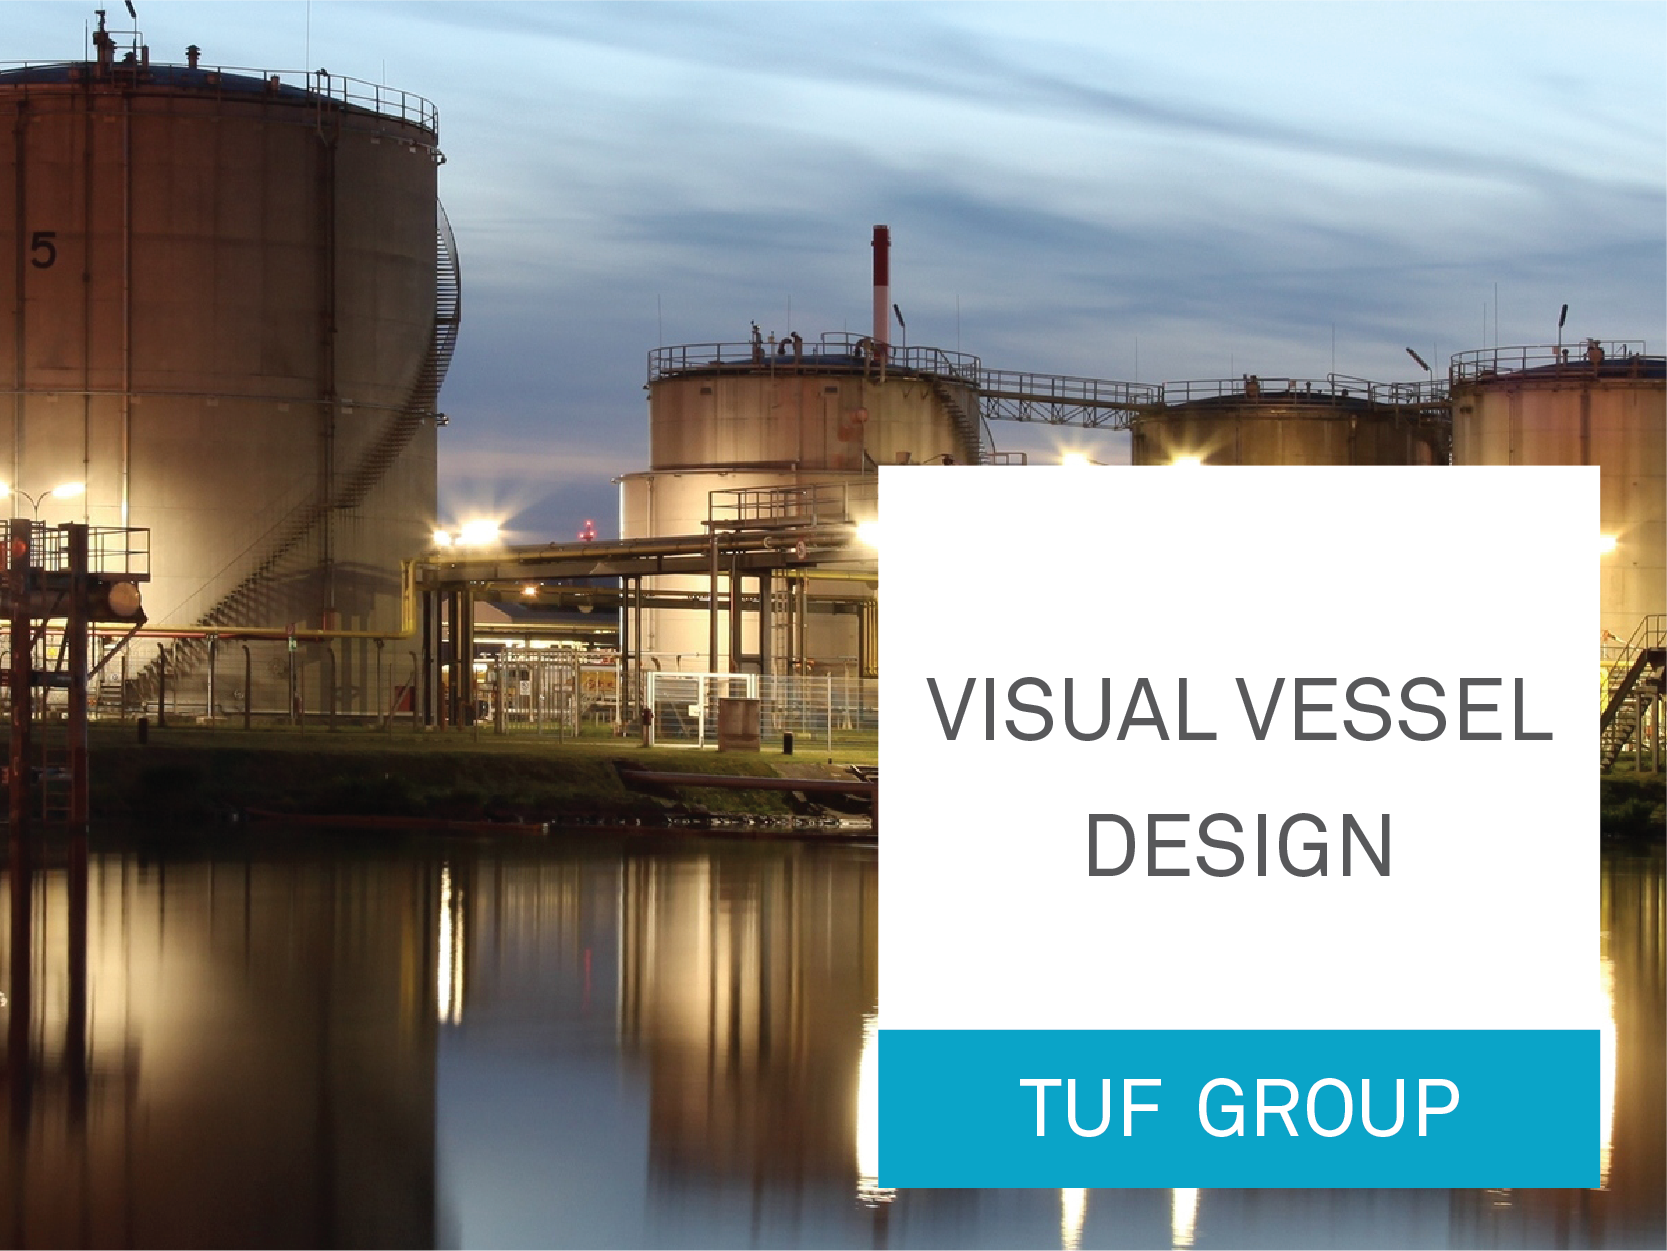 TUF group, Visual Vessel Design